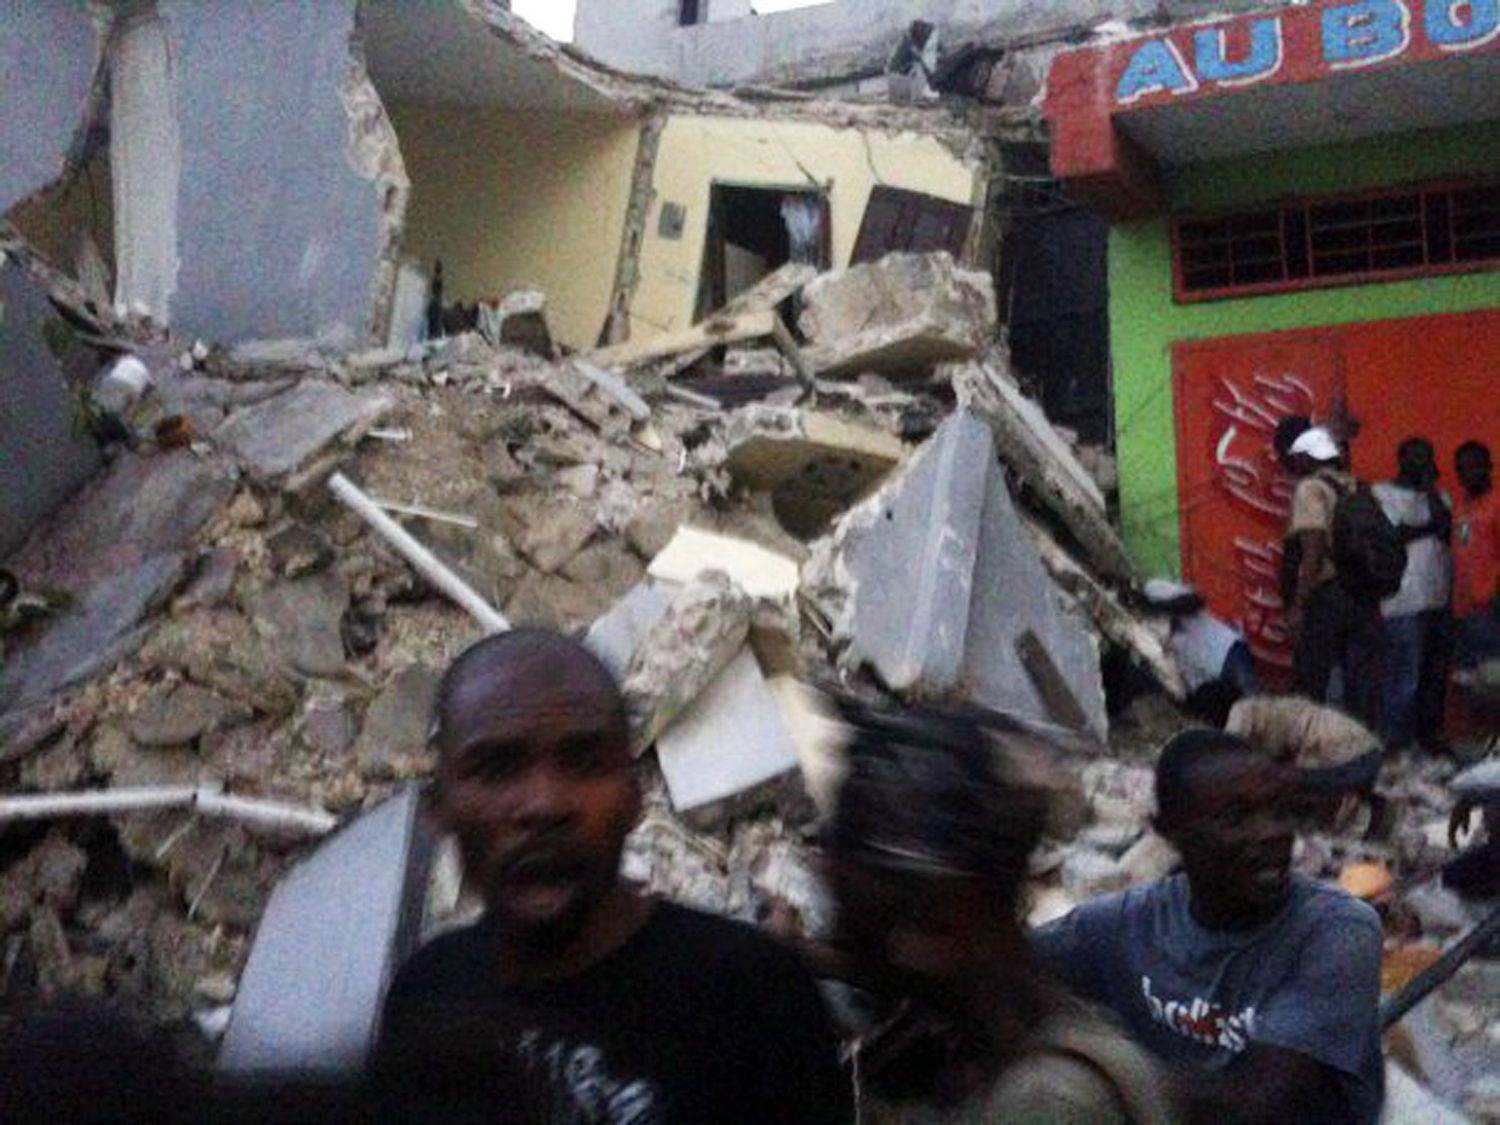 This photo provided by Carel Pedre shows people running past rubble of a damaged building in Port-au-Prince, Haiti, Tuesday, Jan. 12, 2010. The largest earthquake ever recorded in the area shook Haiti on Tuesday, collapsing a hospital where people screamed for help.